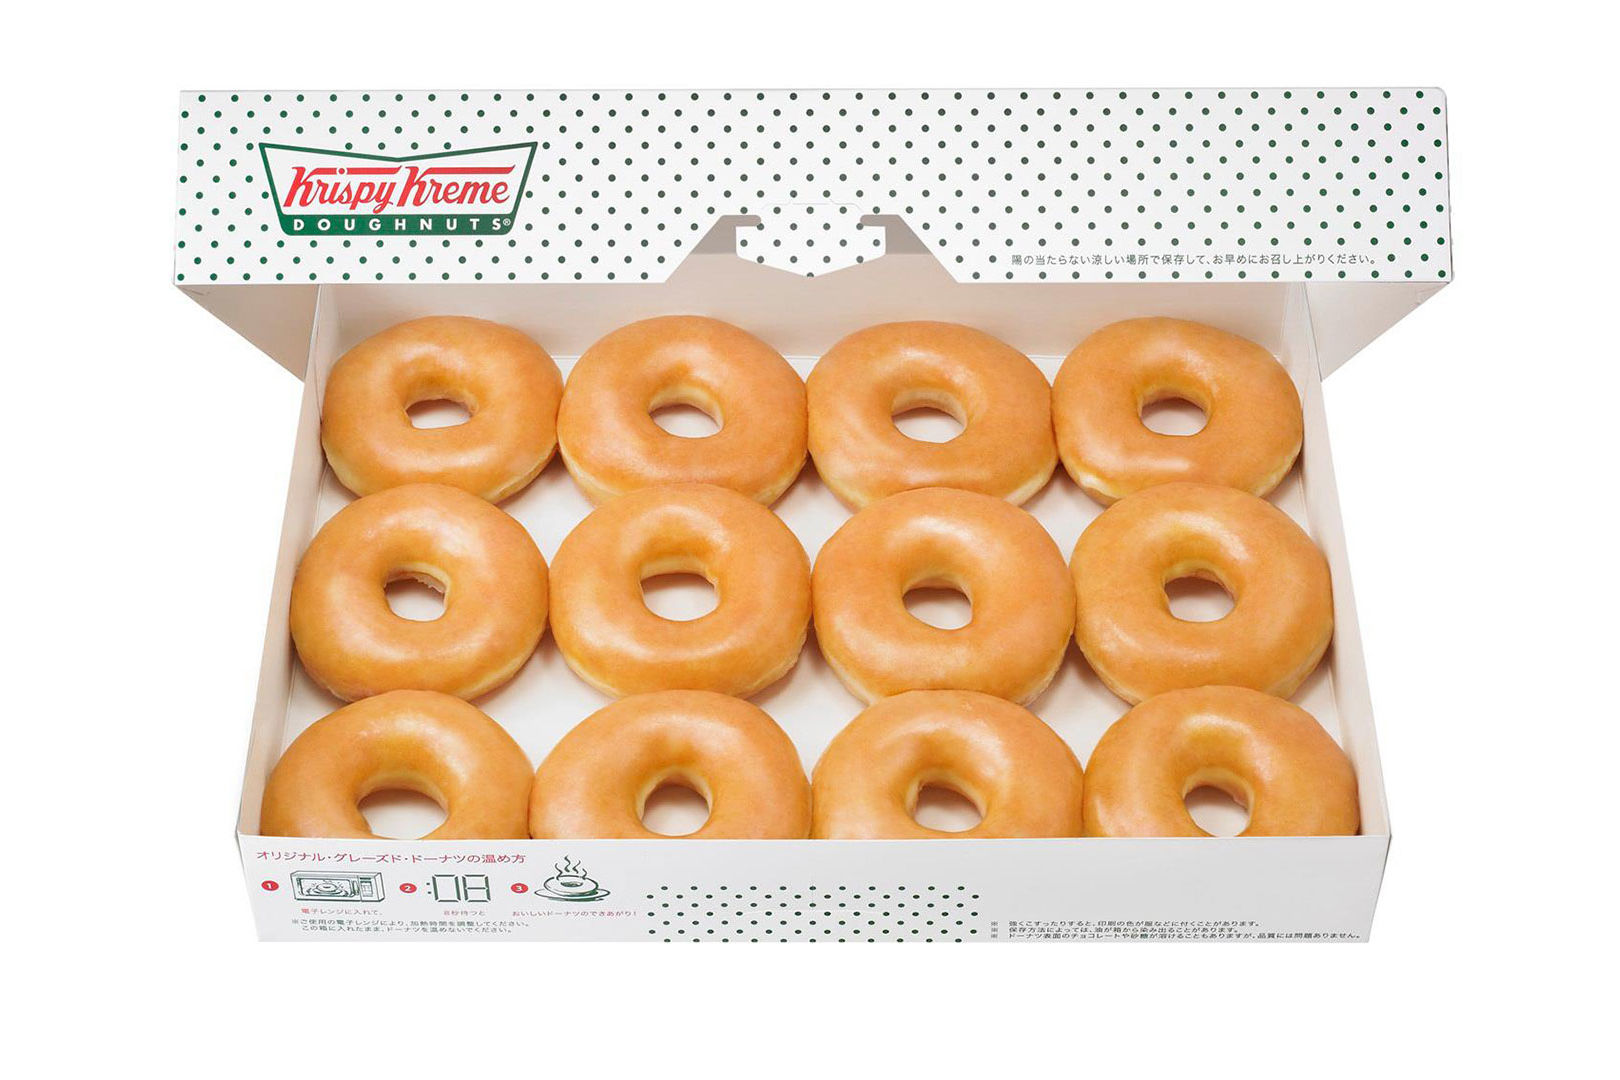 Donate $1 and Get a Free Krispy Kreme Doughnut